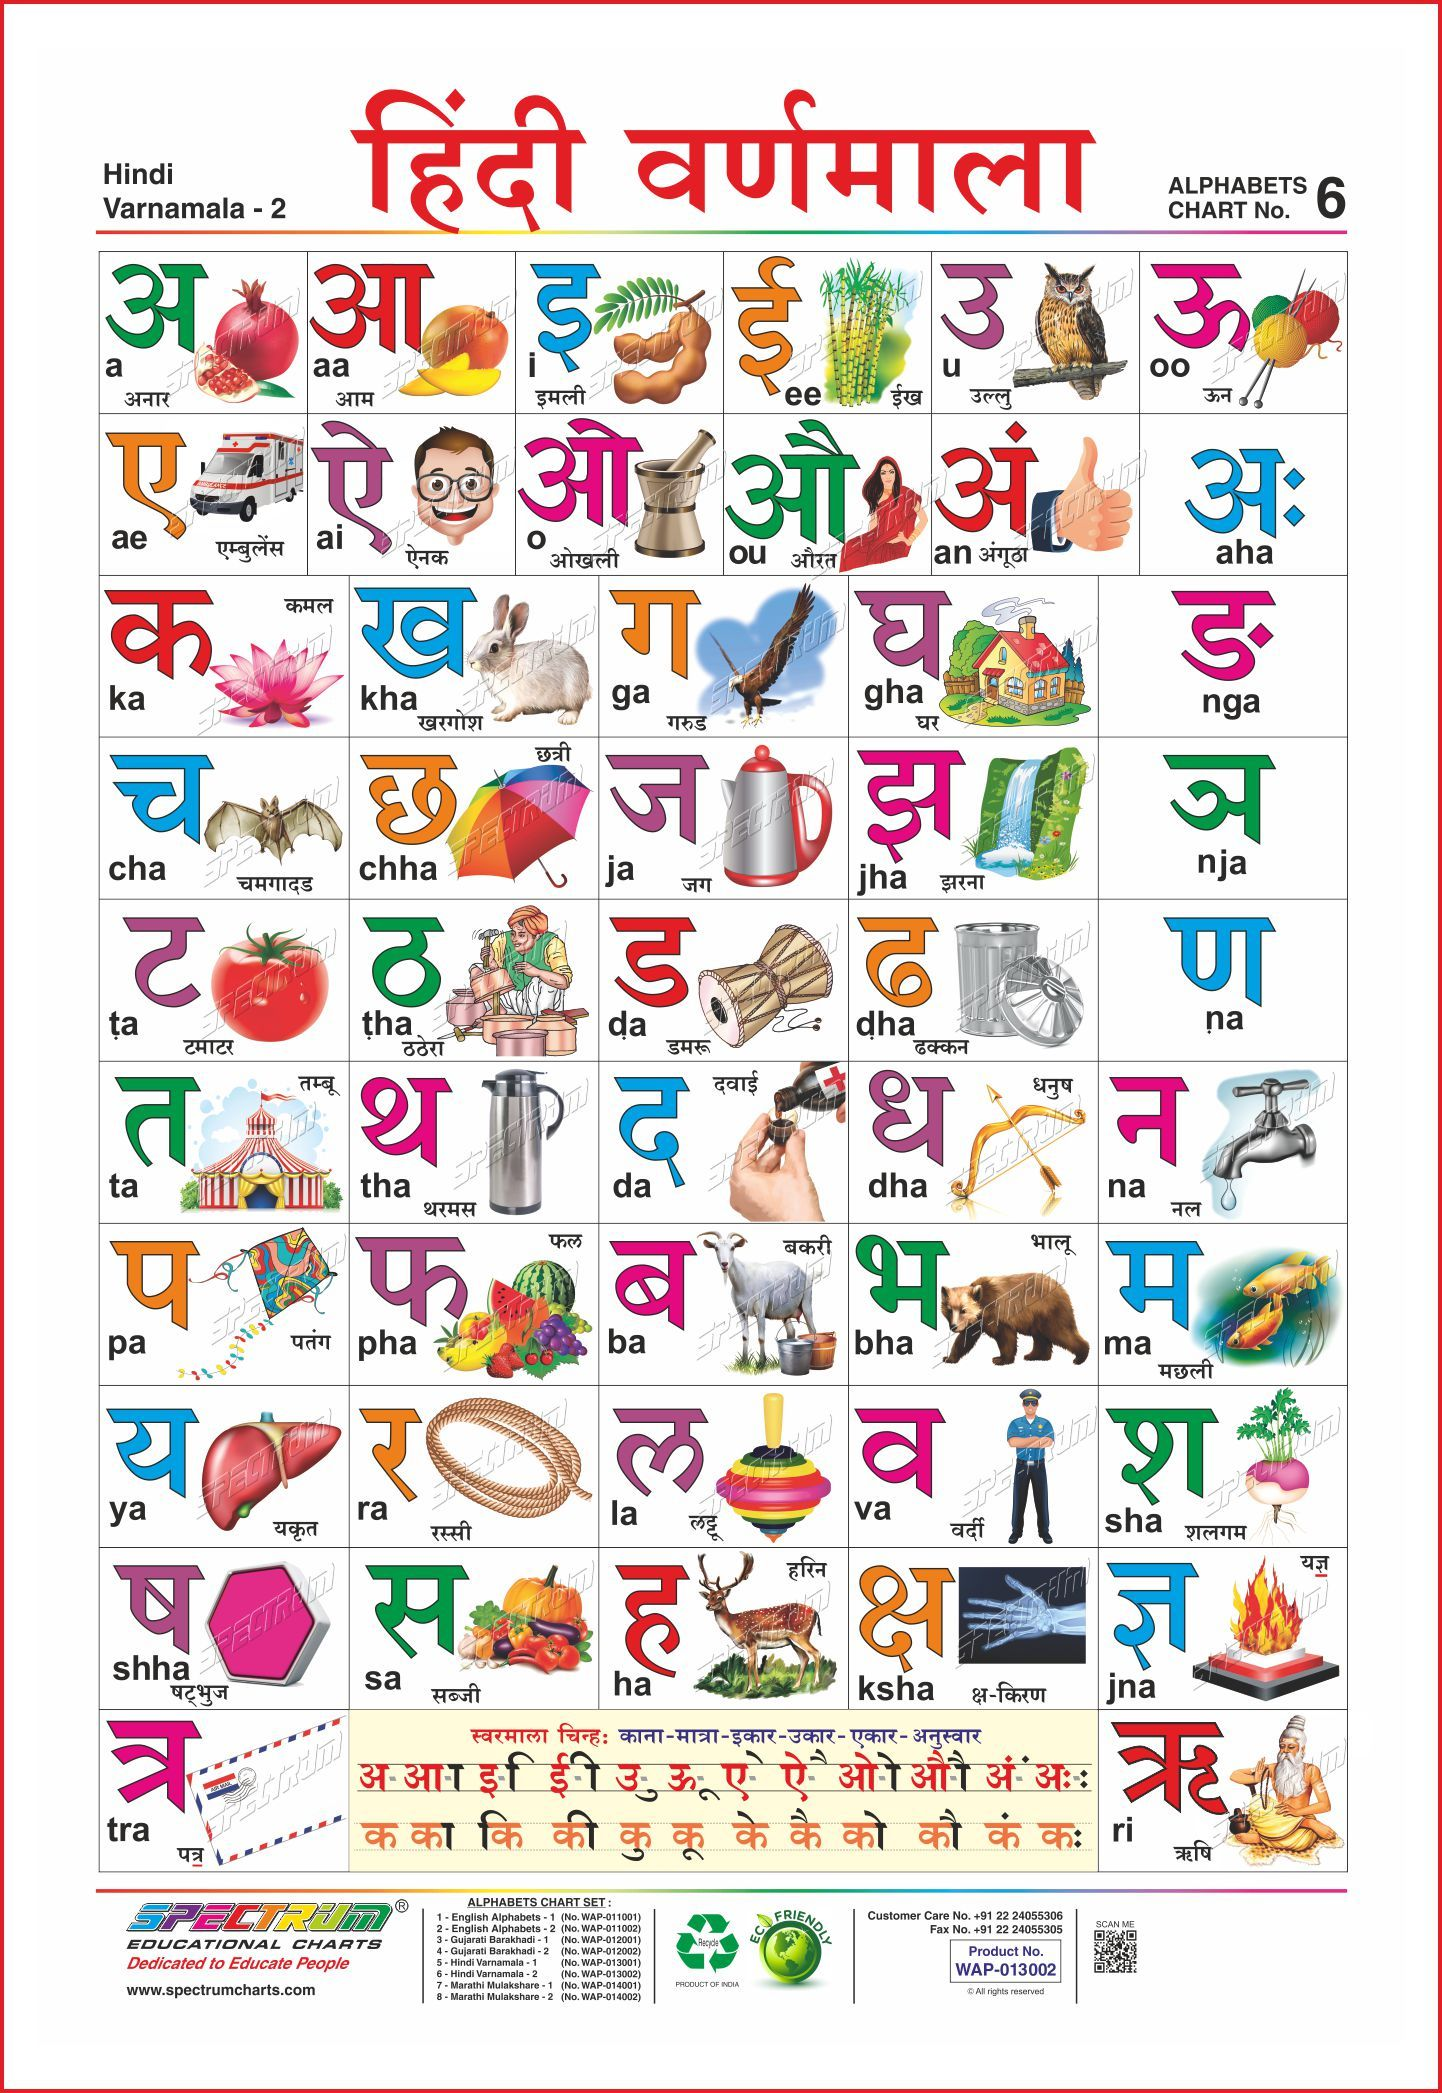 Hindi Varnamala Wall Chart